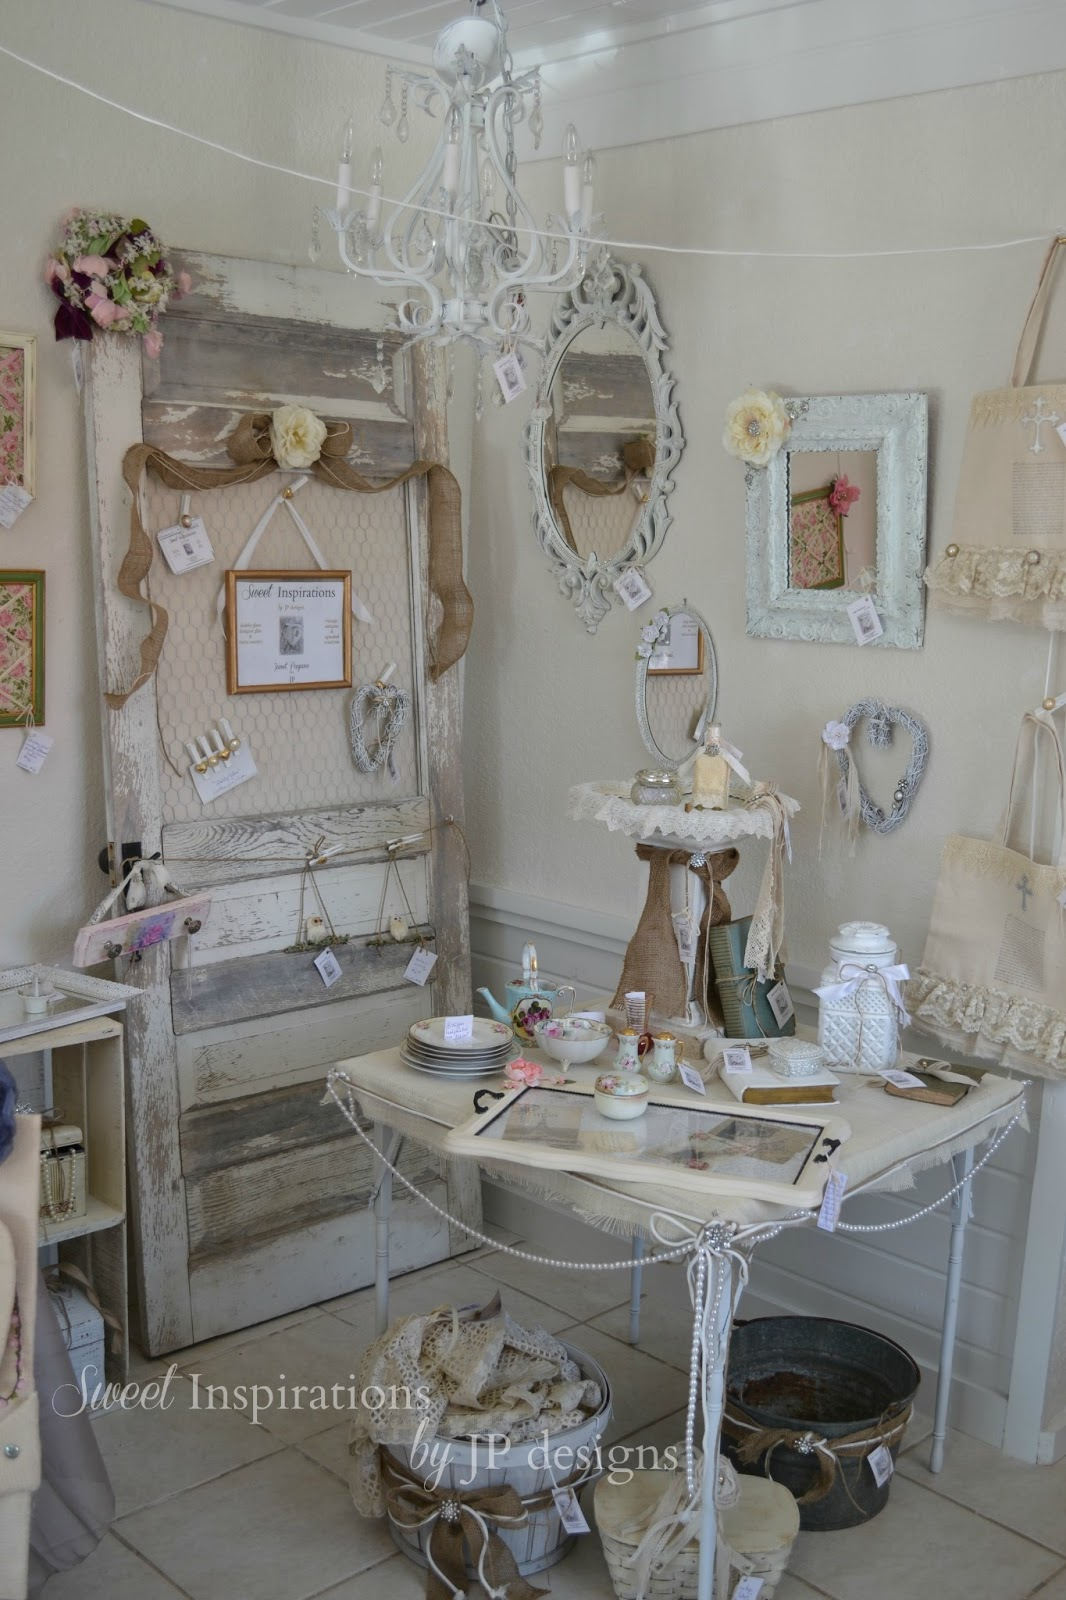 Shabby Chic Shop Sweet Inspirations By Jp Designs: My New Shop Space Is ...